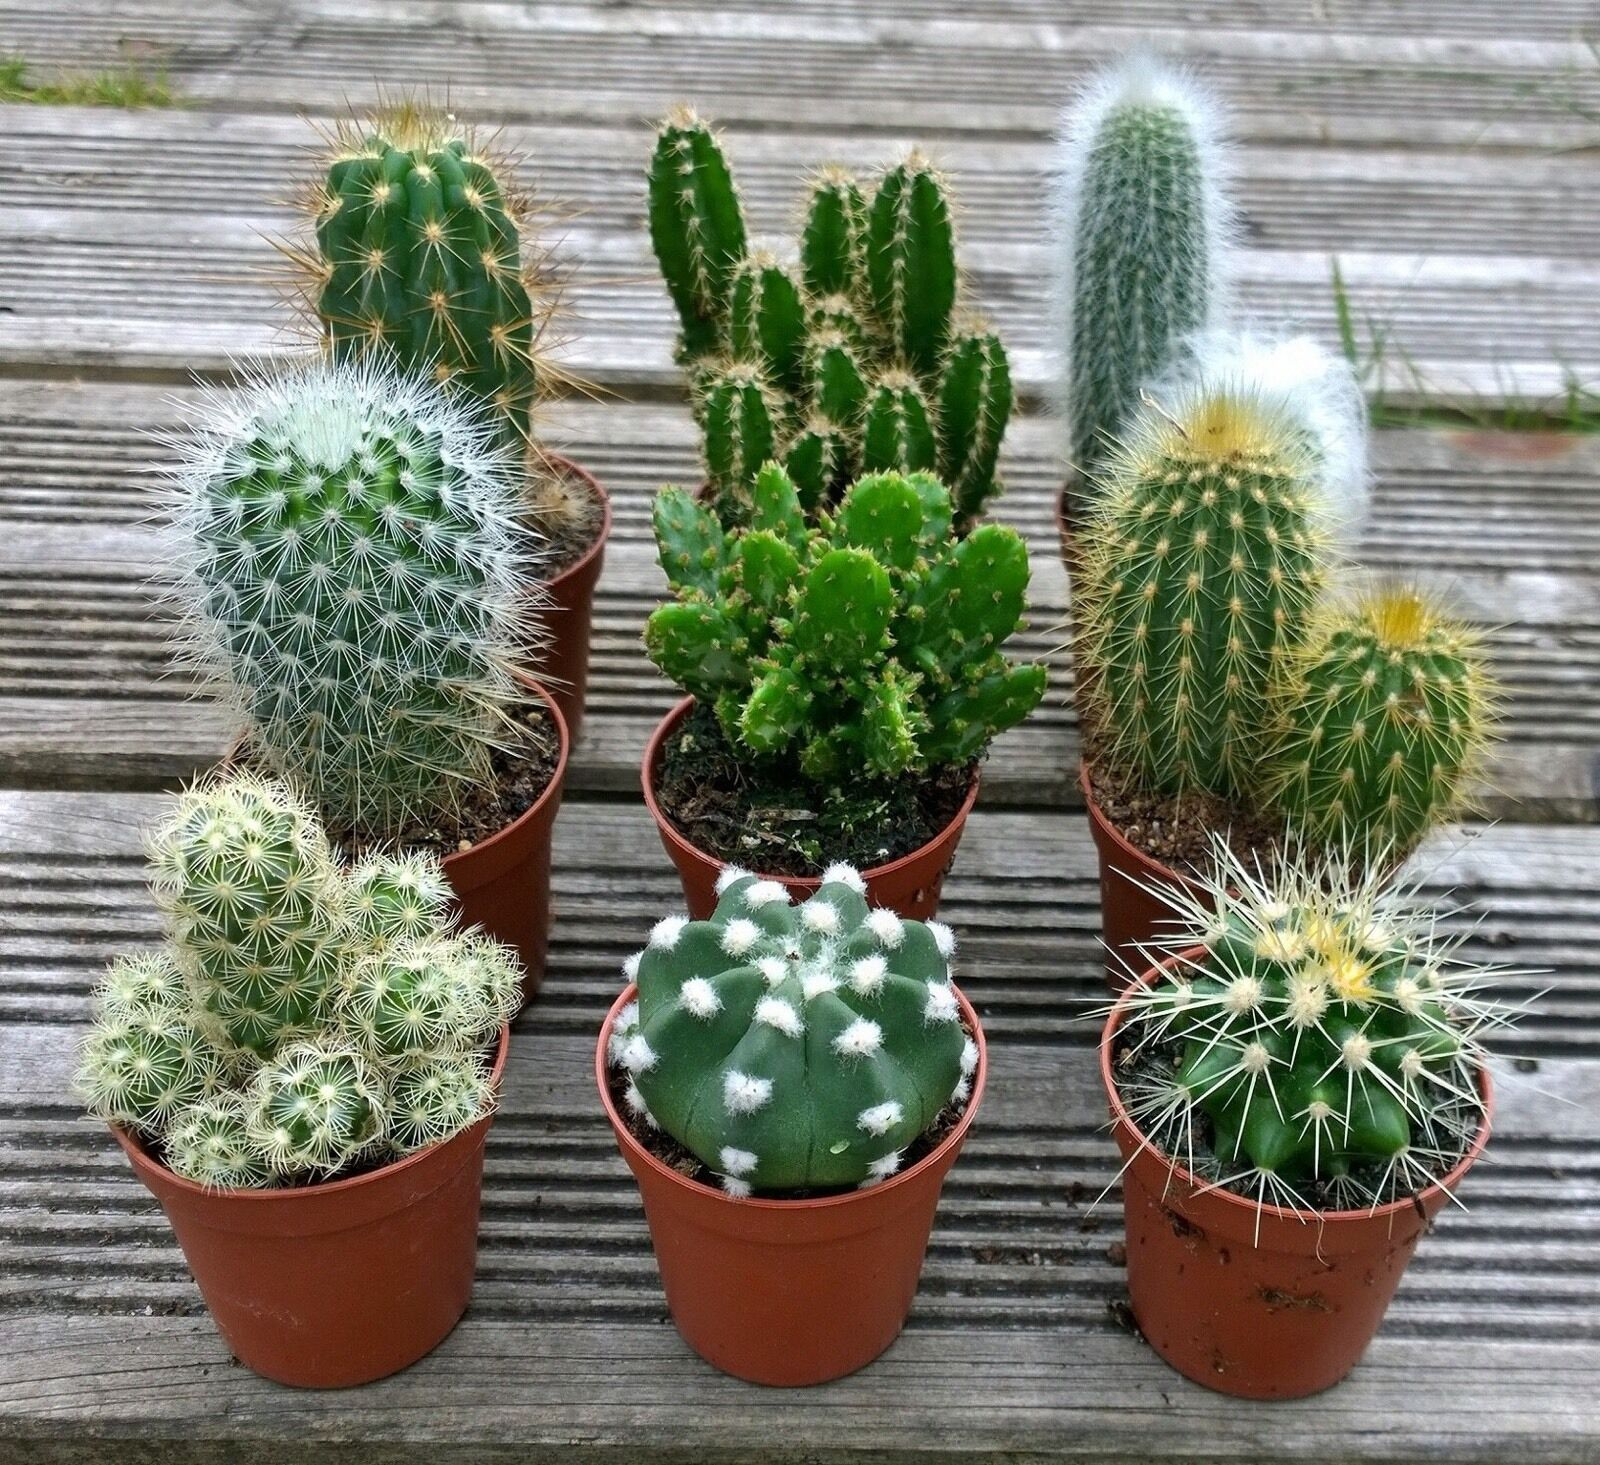 Set of 3 mixed cactus cacti plants in pots Cactus pots for sale